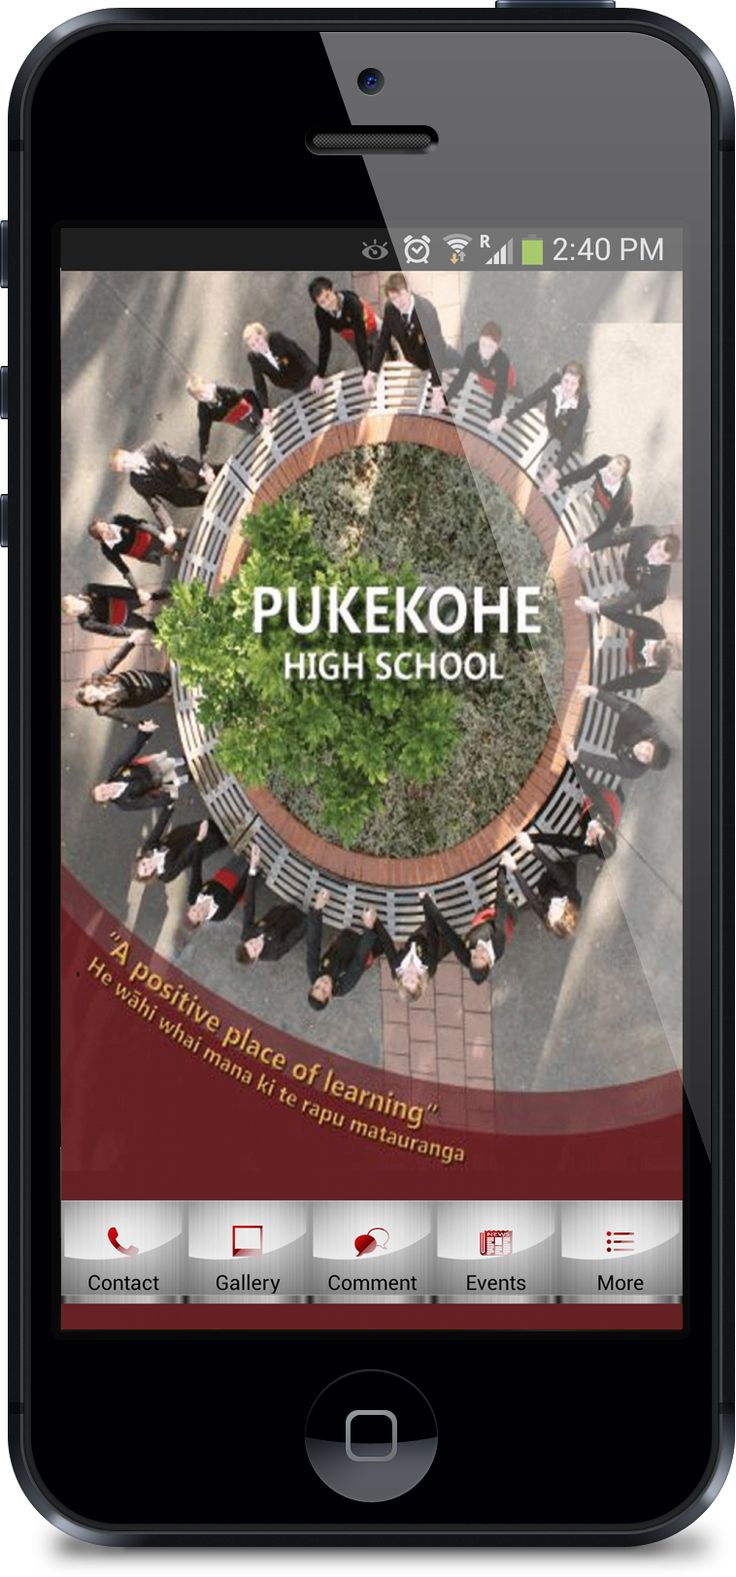 Mobile School App - Keeping in touch with students, staff and parents. School iPhone and Android Apps by Mobile App FX - http://www.mobileappfx.co.nz